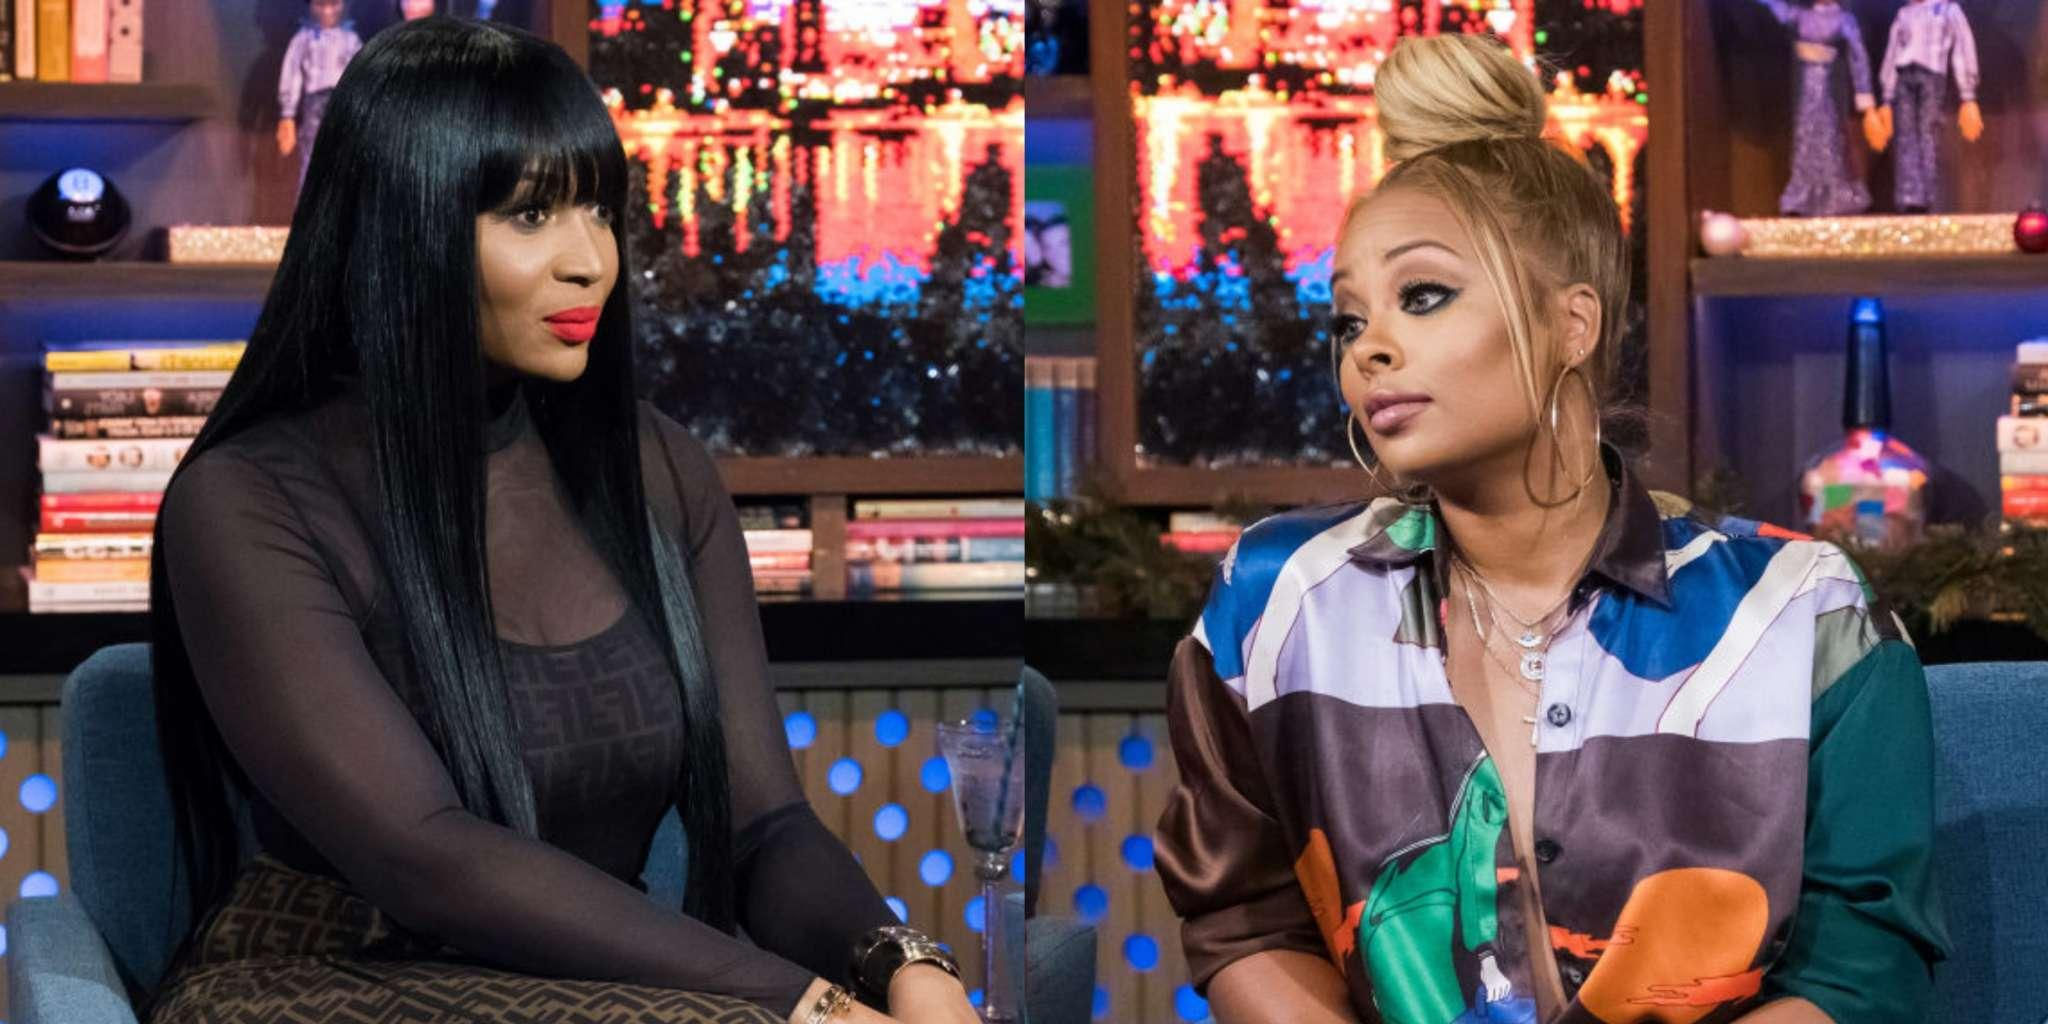 Marlo Hampton Shades Eva Marcille By Calling Her A 'Cute IG Model' On WWHL - Angry Fans Defend Eva And Slam Marlo